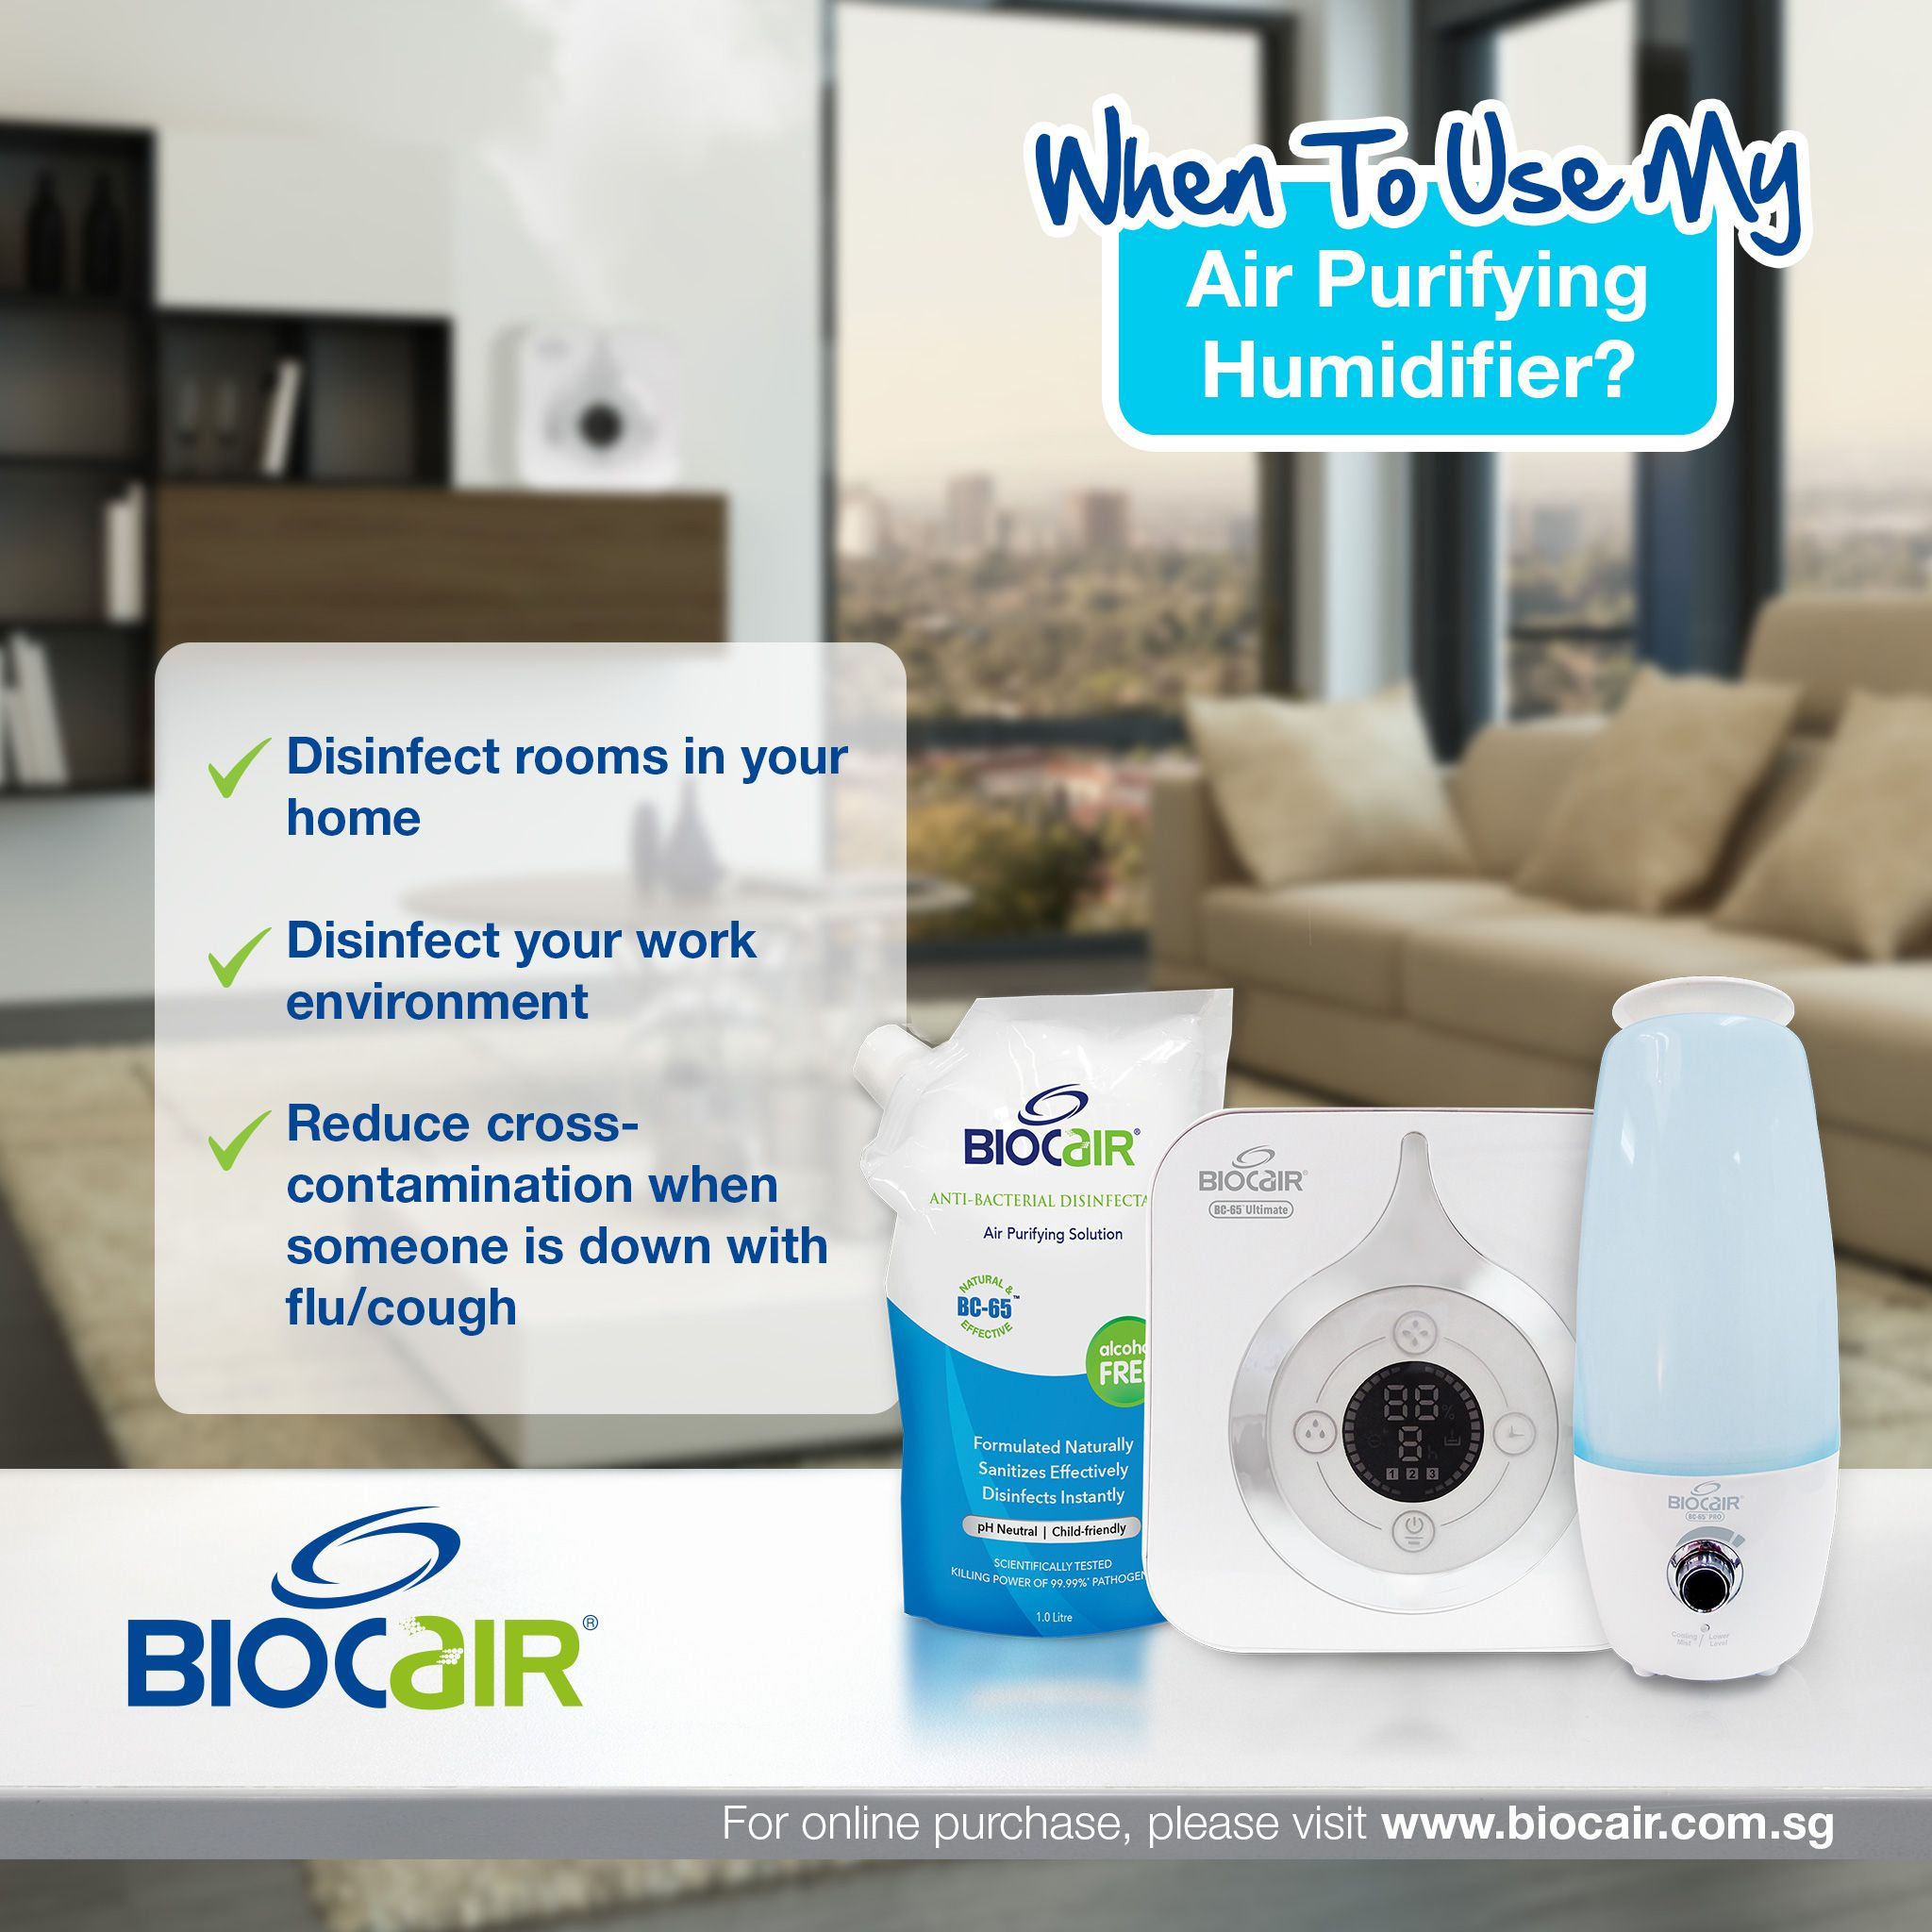 BioCair's Air Purifying Humidifier helps to disinfect rooms